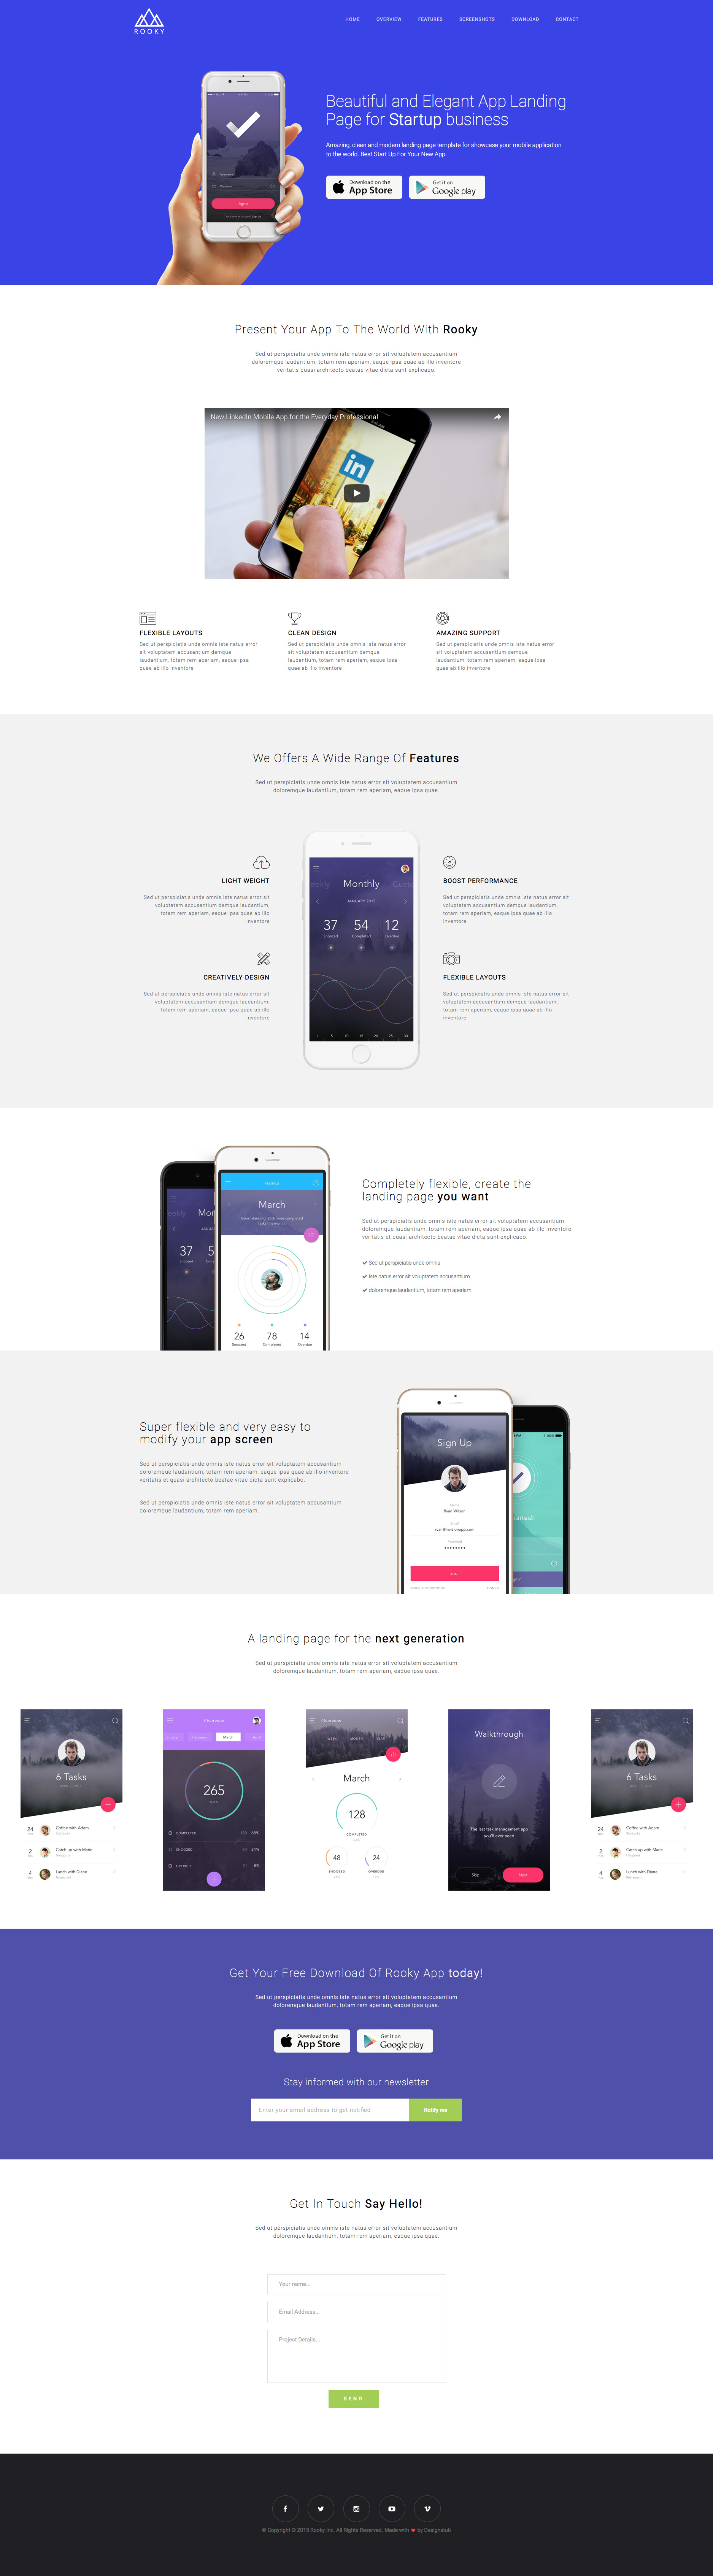 Rooky is clean and beautiful free responsive HTML5 App landing website template for application based websites. Built with the popular twitter Bootstrap and HTML5 code. This template is fully responsive and retina ready.